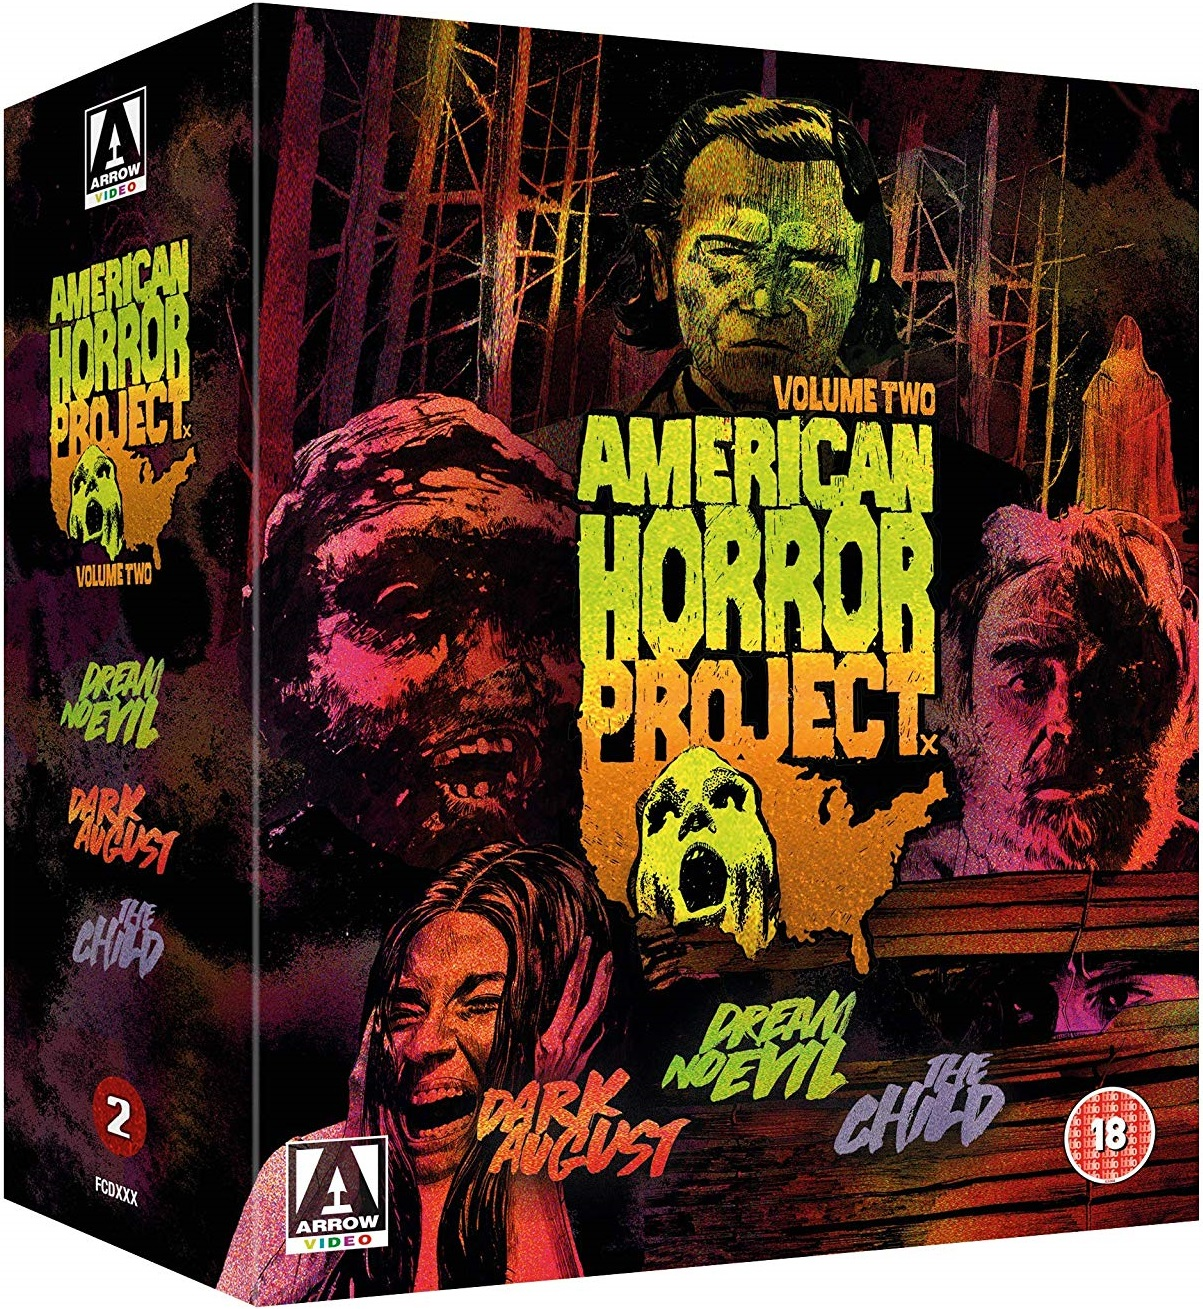 American Horror Project Vol. 2 UK Blu-Ray Box Set 1